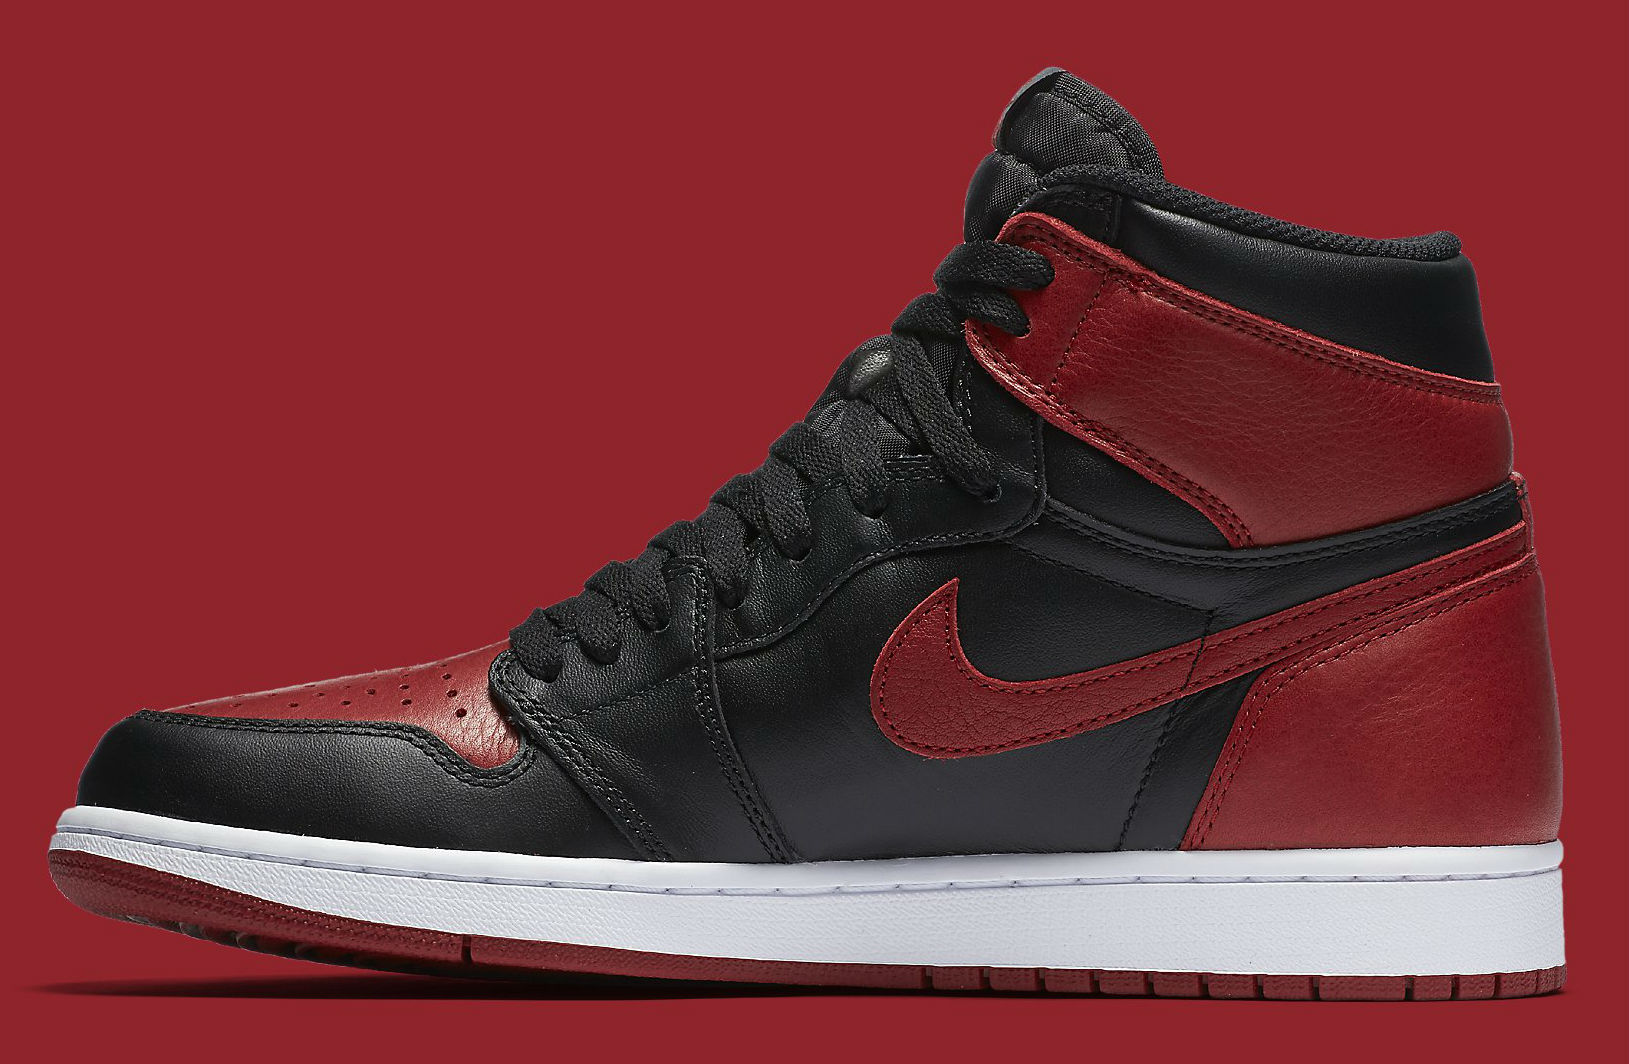 new product 9f7d1 fa56d Air Jordan 1 Banned 555088-001 | Sole Collector